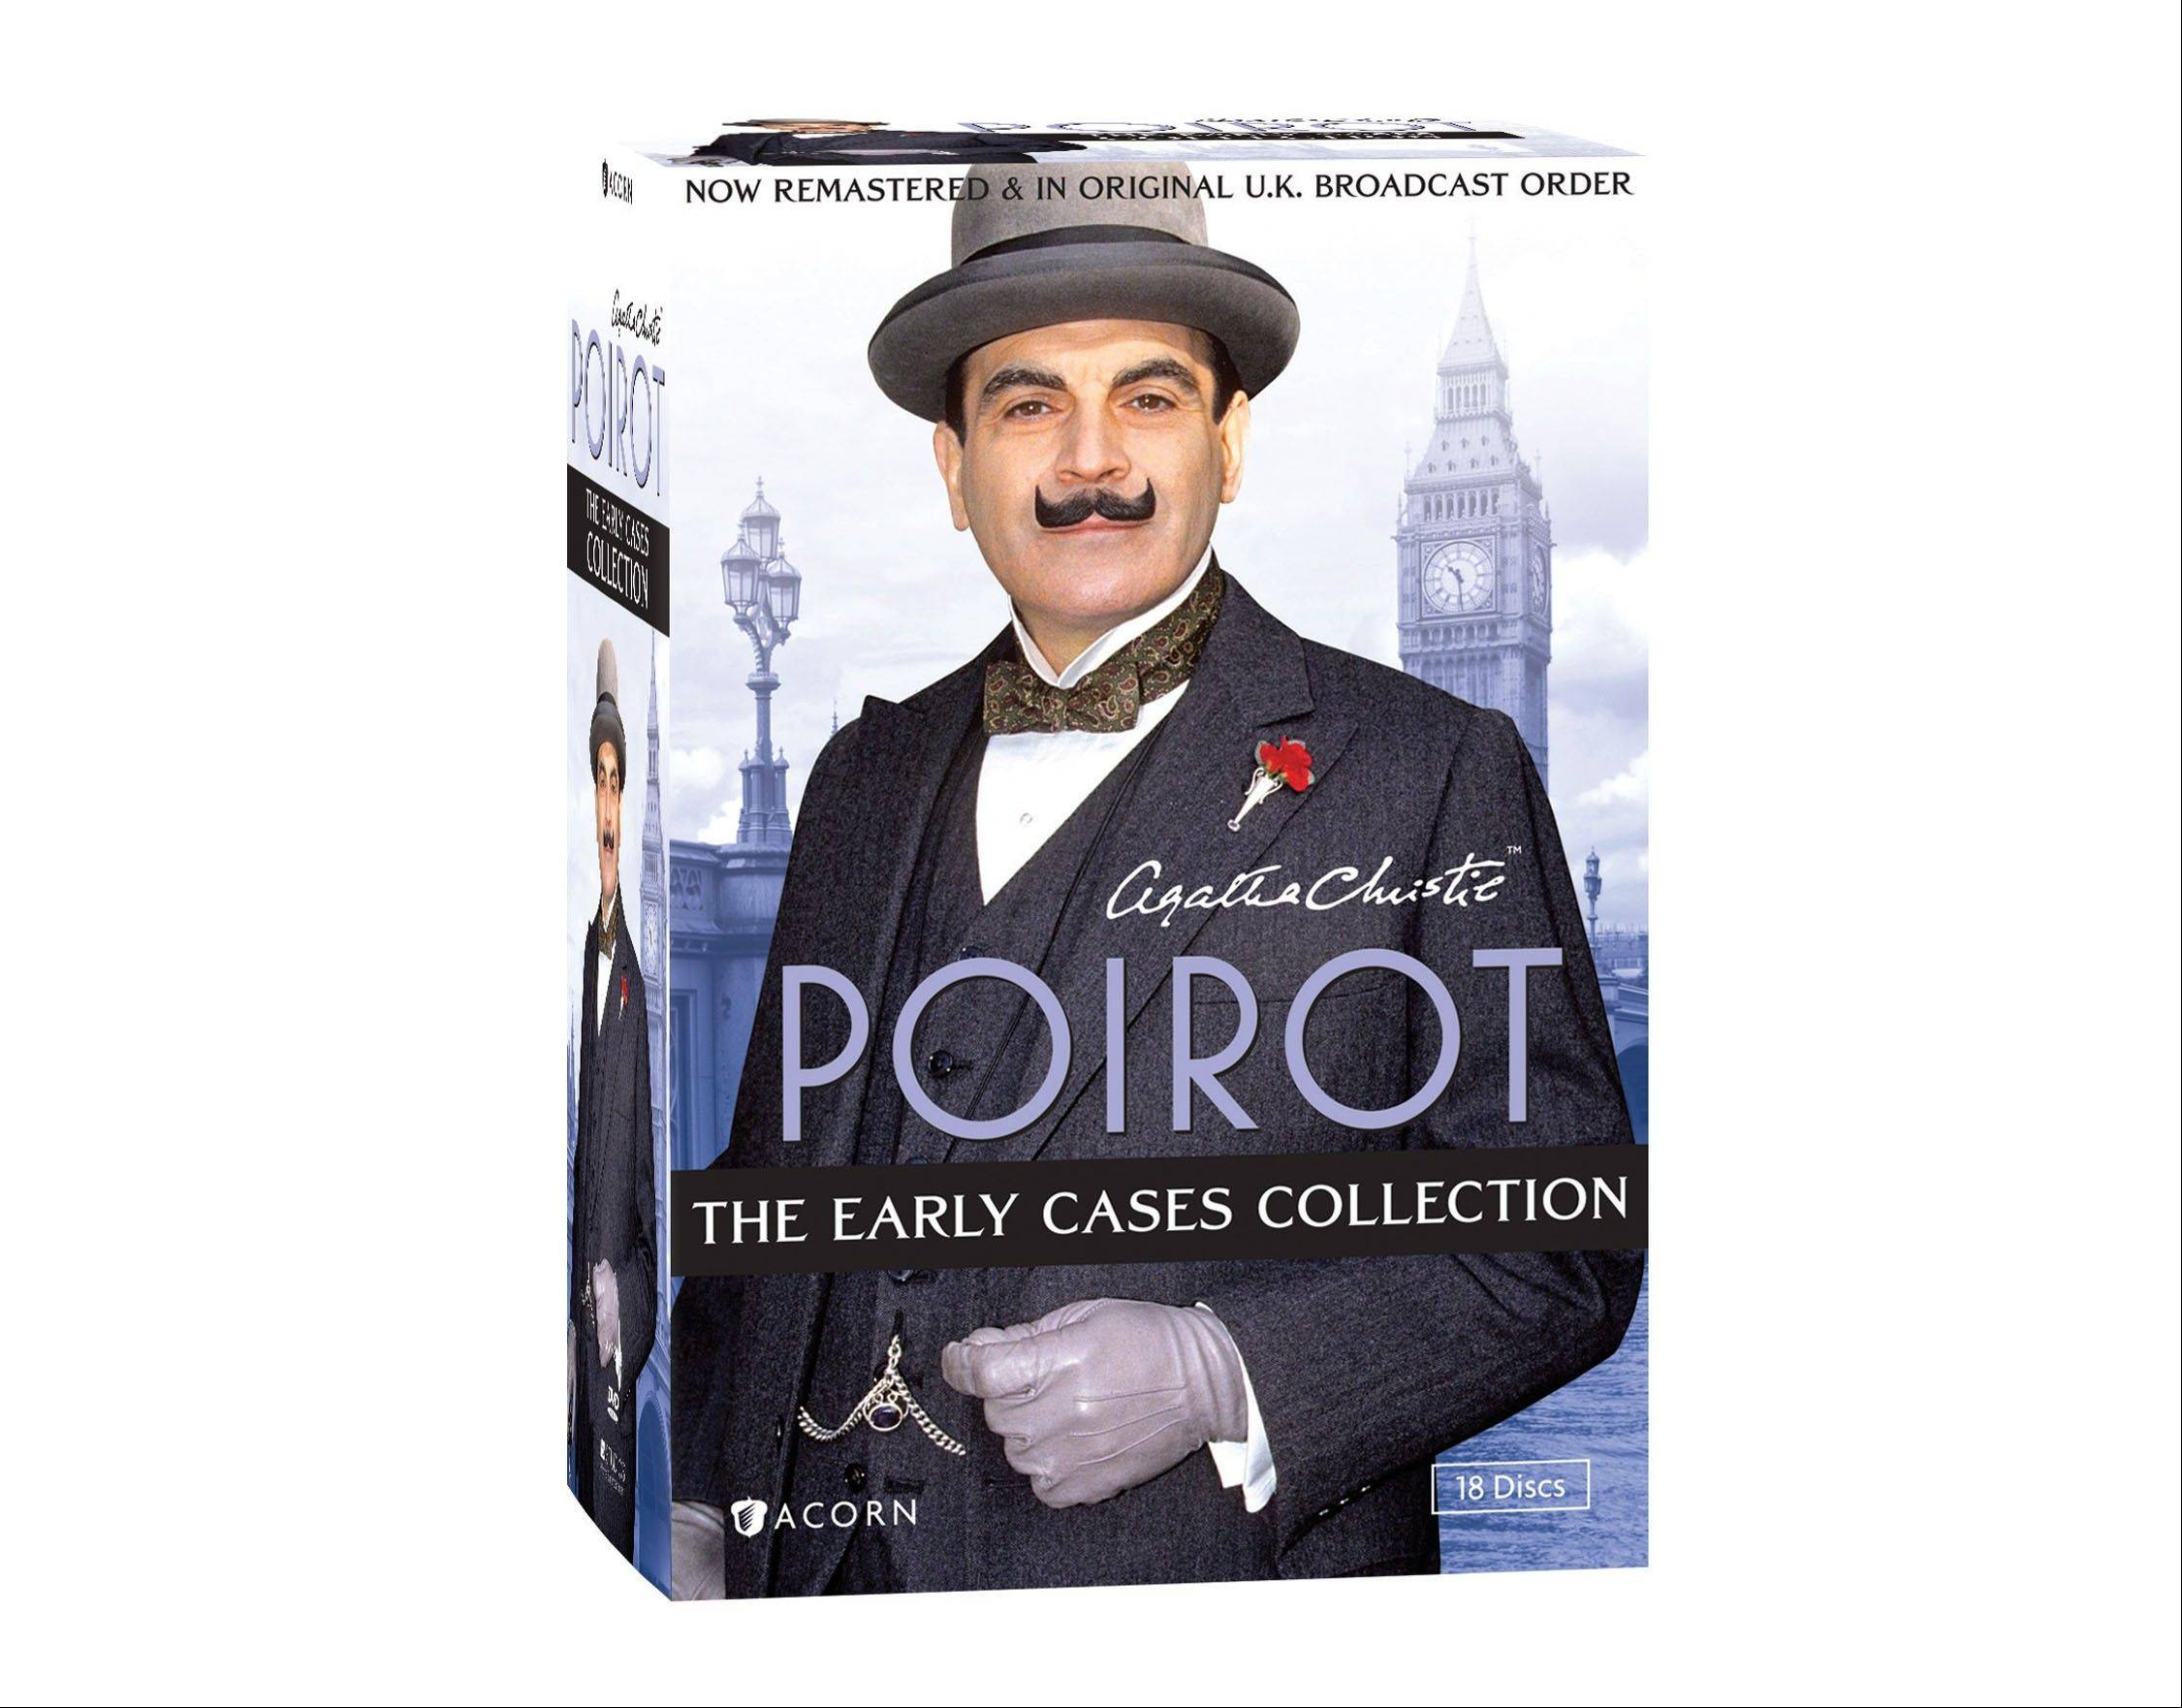 """Poirot: The Early Cases Collection"" spotlights Agatha Christie's most famous sleuth. He is on the case in 45 whodunits from the first six series of the TV phenomenon starring David Suchet in the title role."